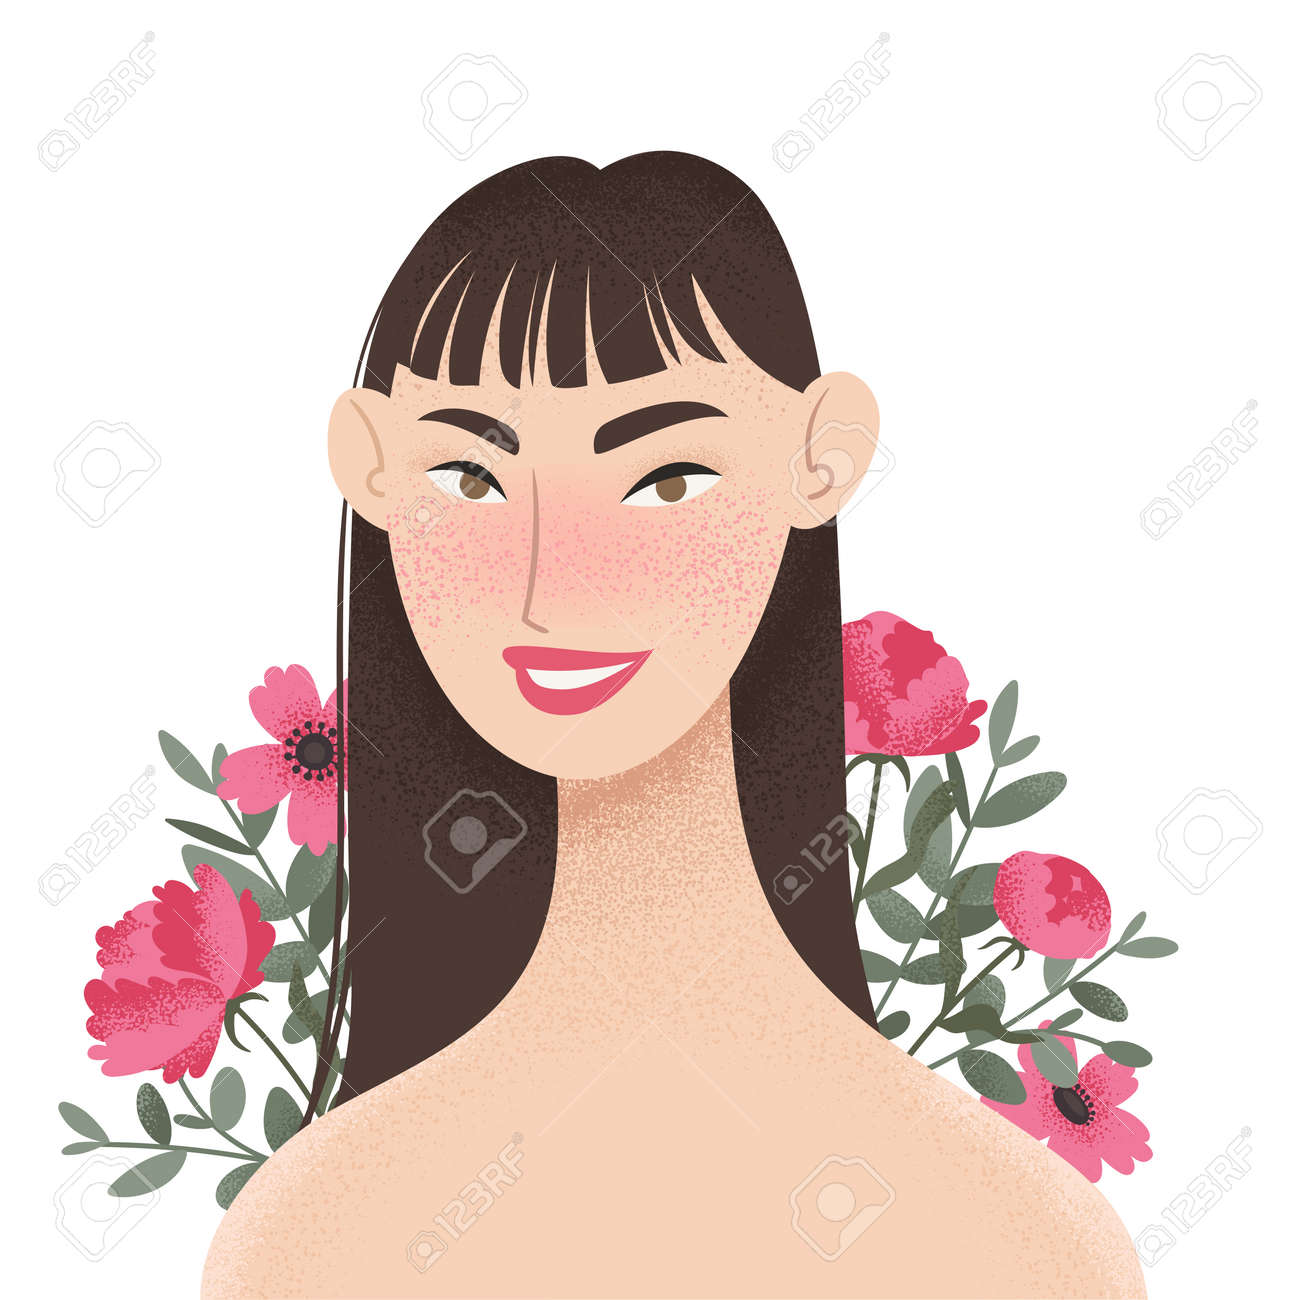 Beauty female portrait decorated with pink peonies flowers. Elegant Asian woman avatar with floral background. Vector illustration - 164624872